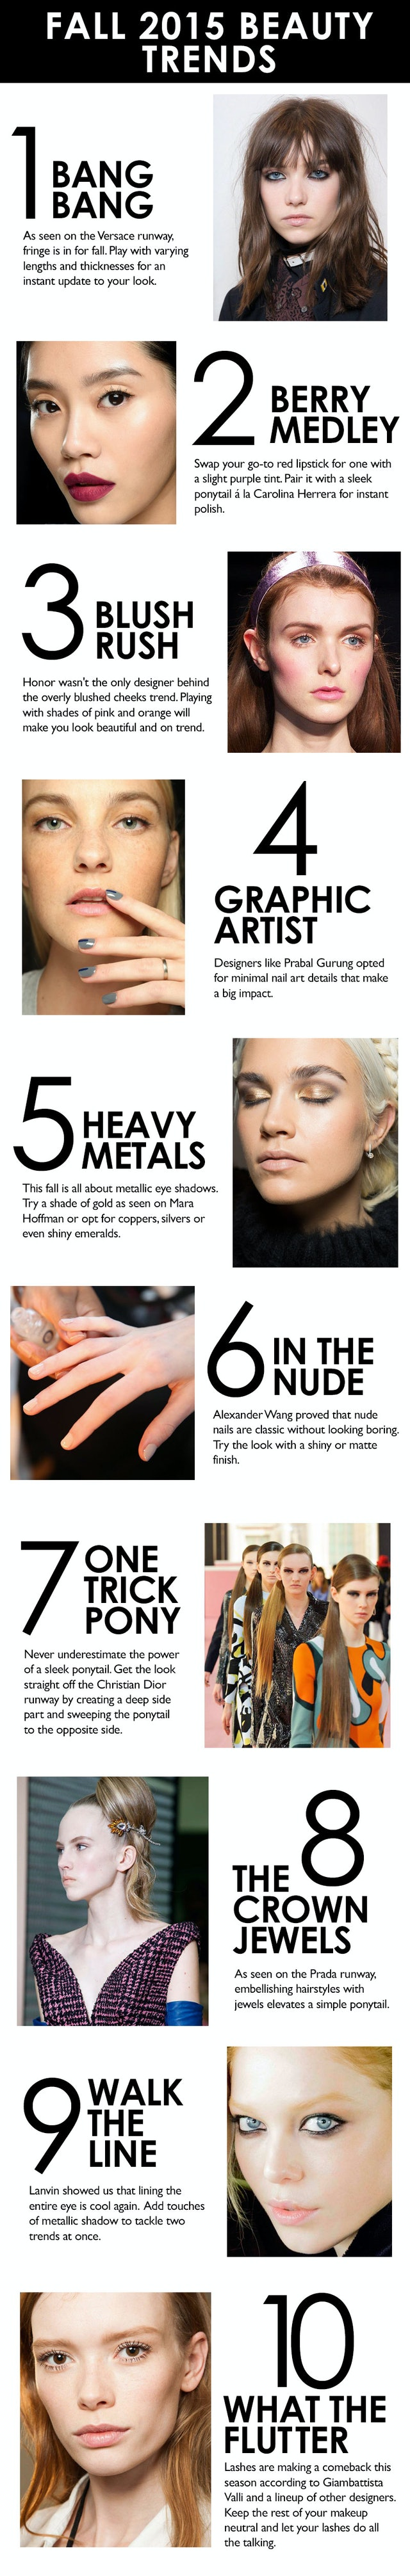 A Guide To The Best Beauty Trends For Fall 2015